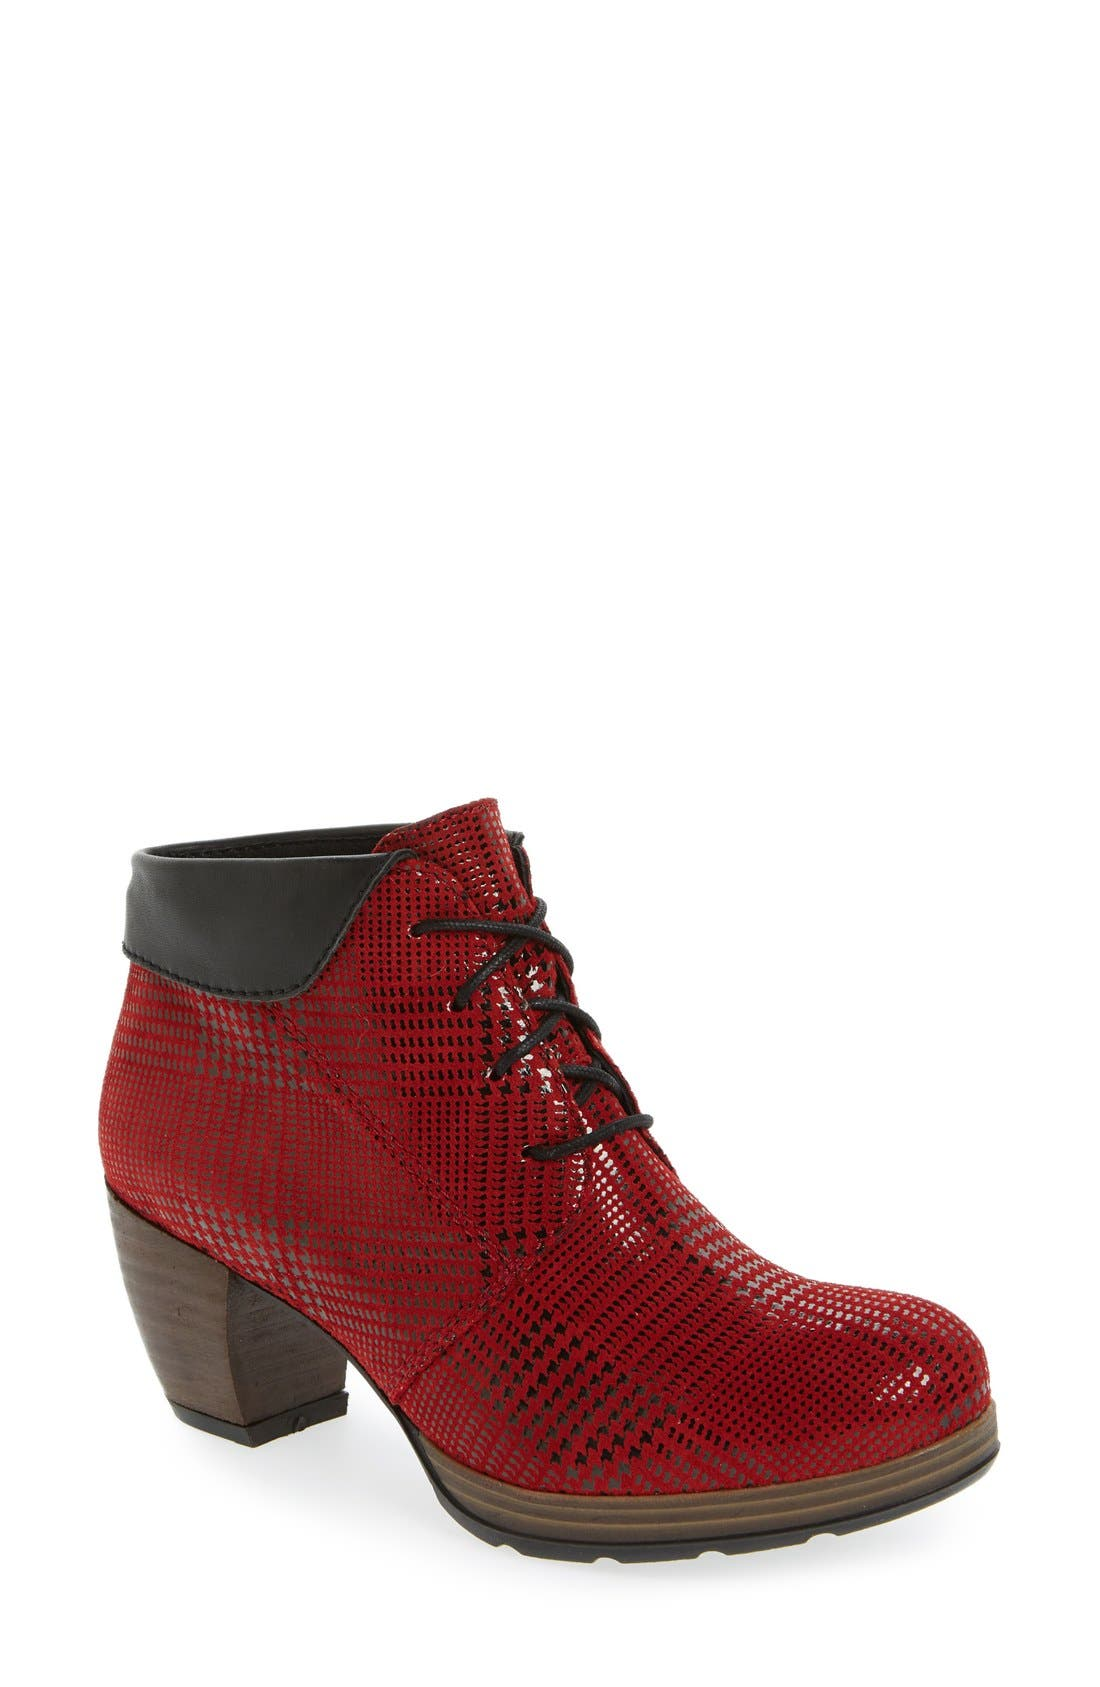 Main Image - Wolky 'Jacquerie' Lace-Up Bootie (Women)